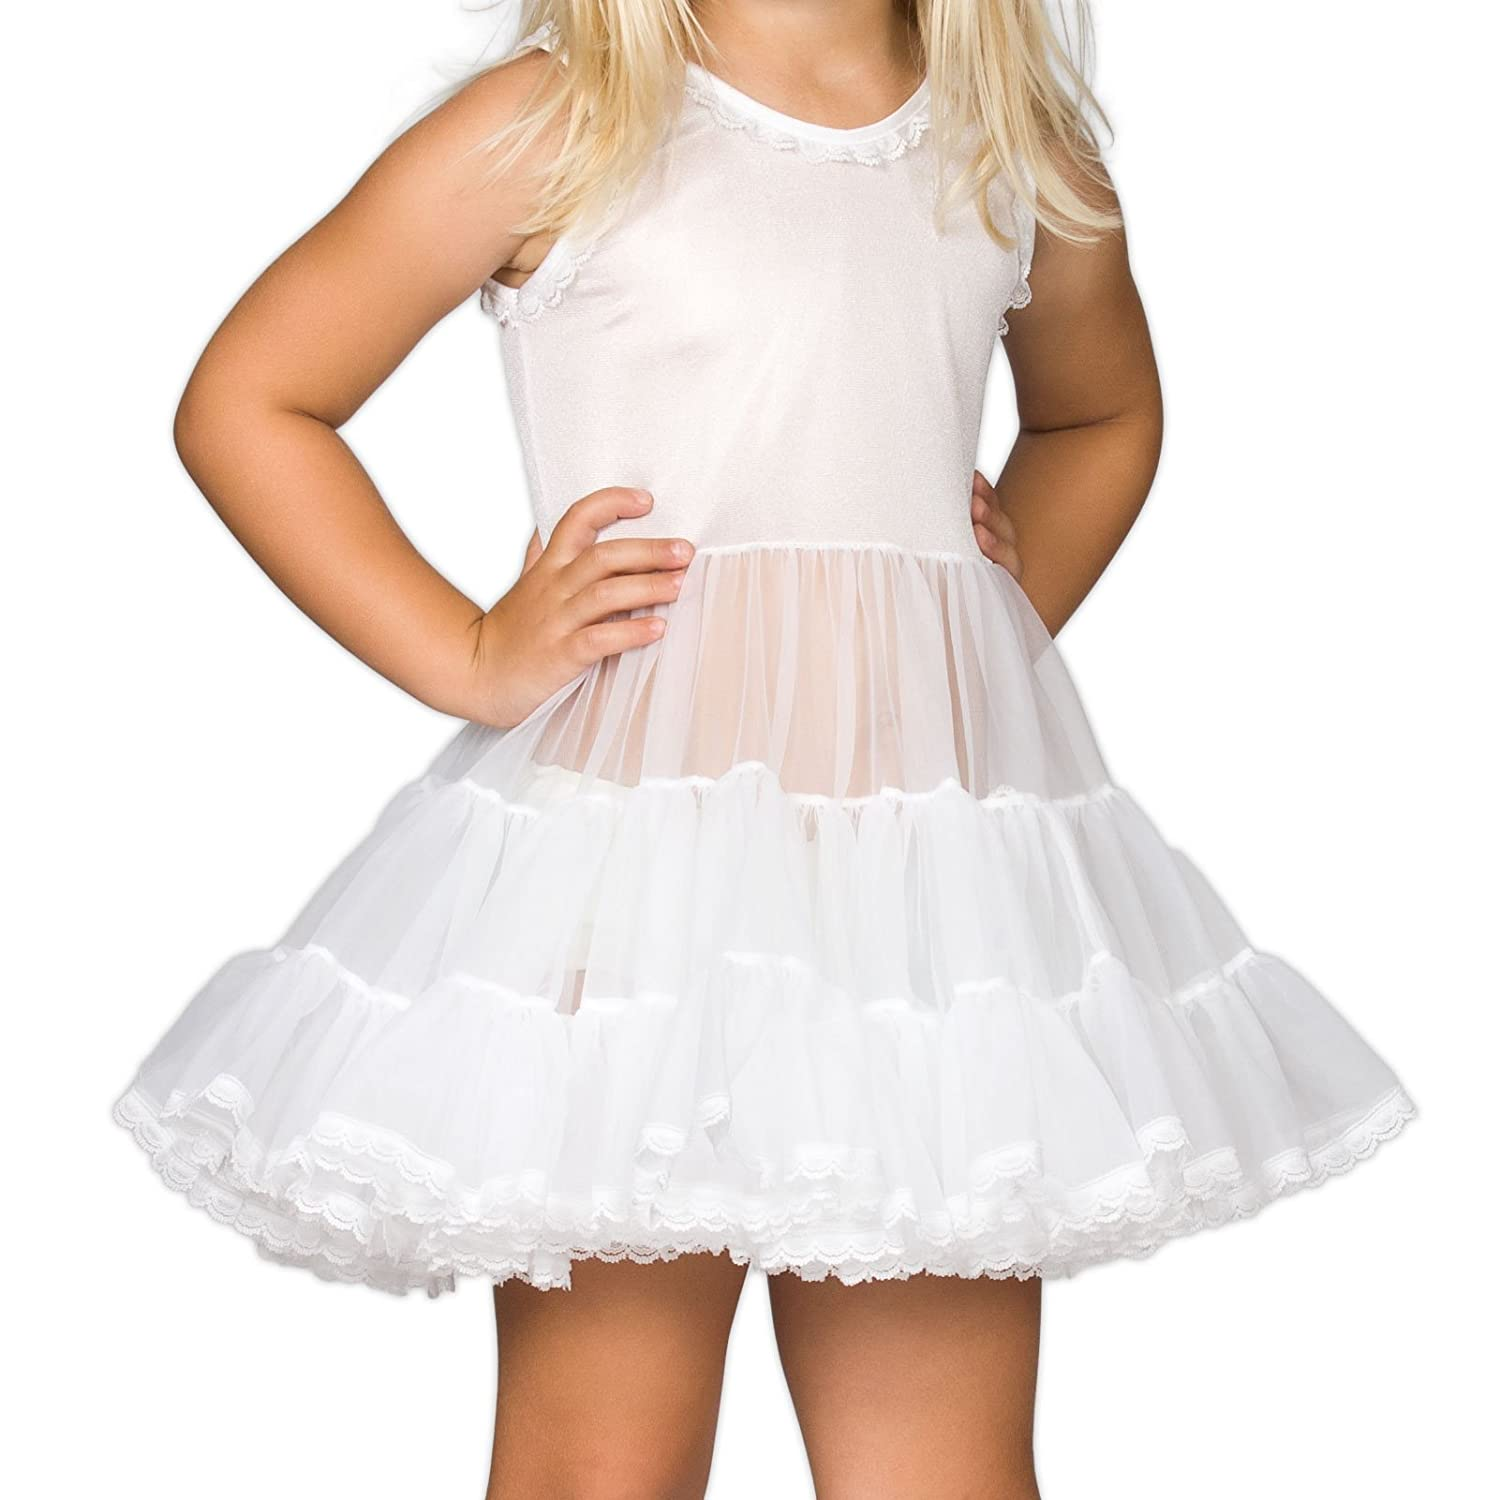 I.C. Collections Baby Girls White Bouffant Slip Petticoat, 24m New ICM 000224-WHA